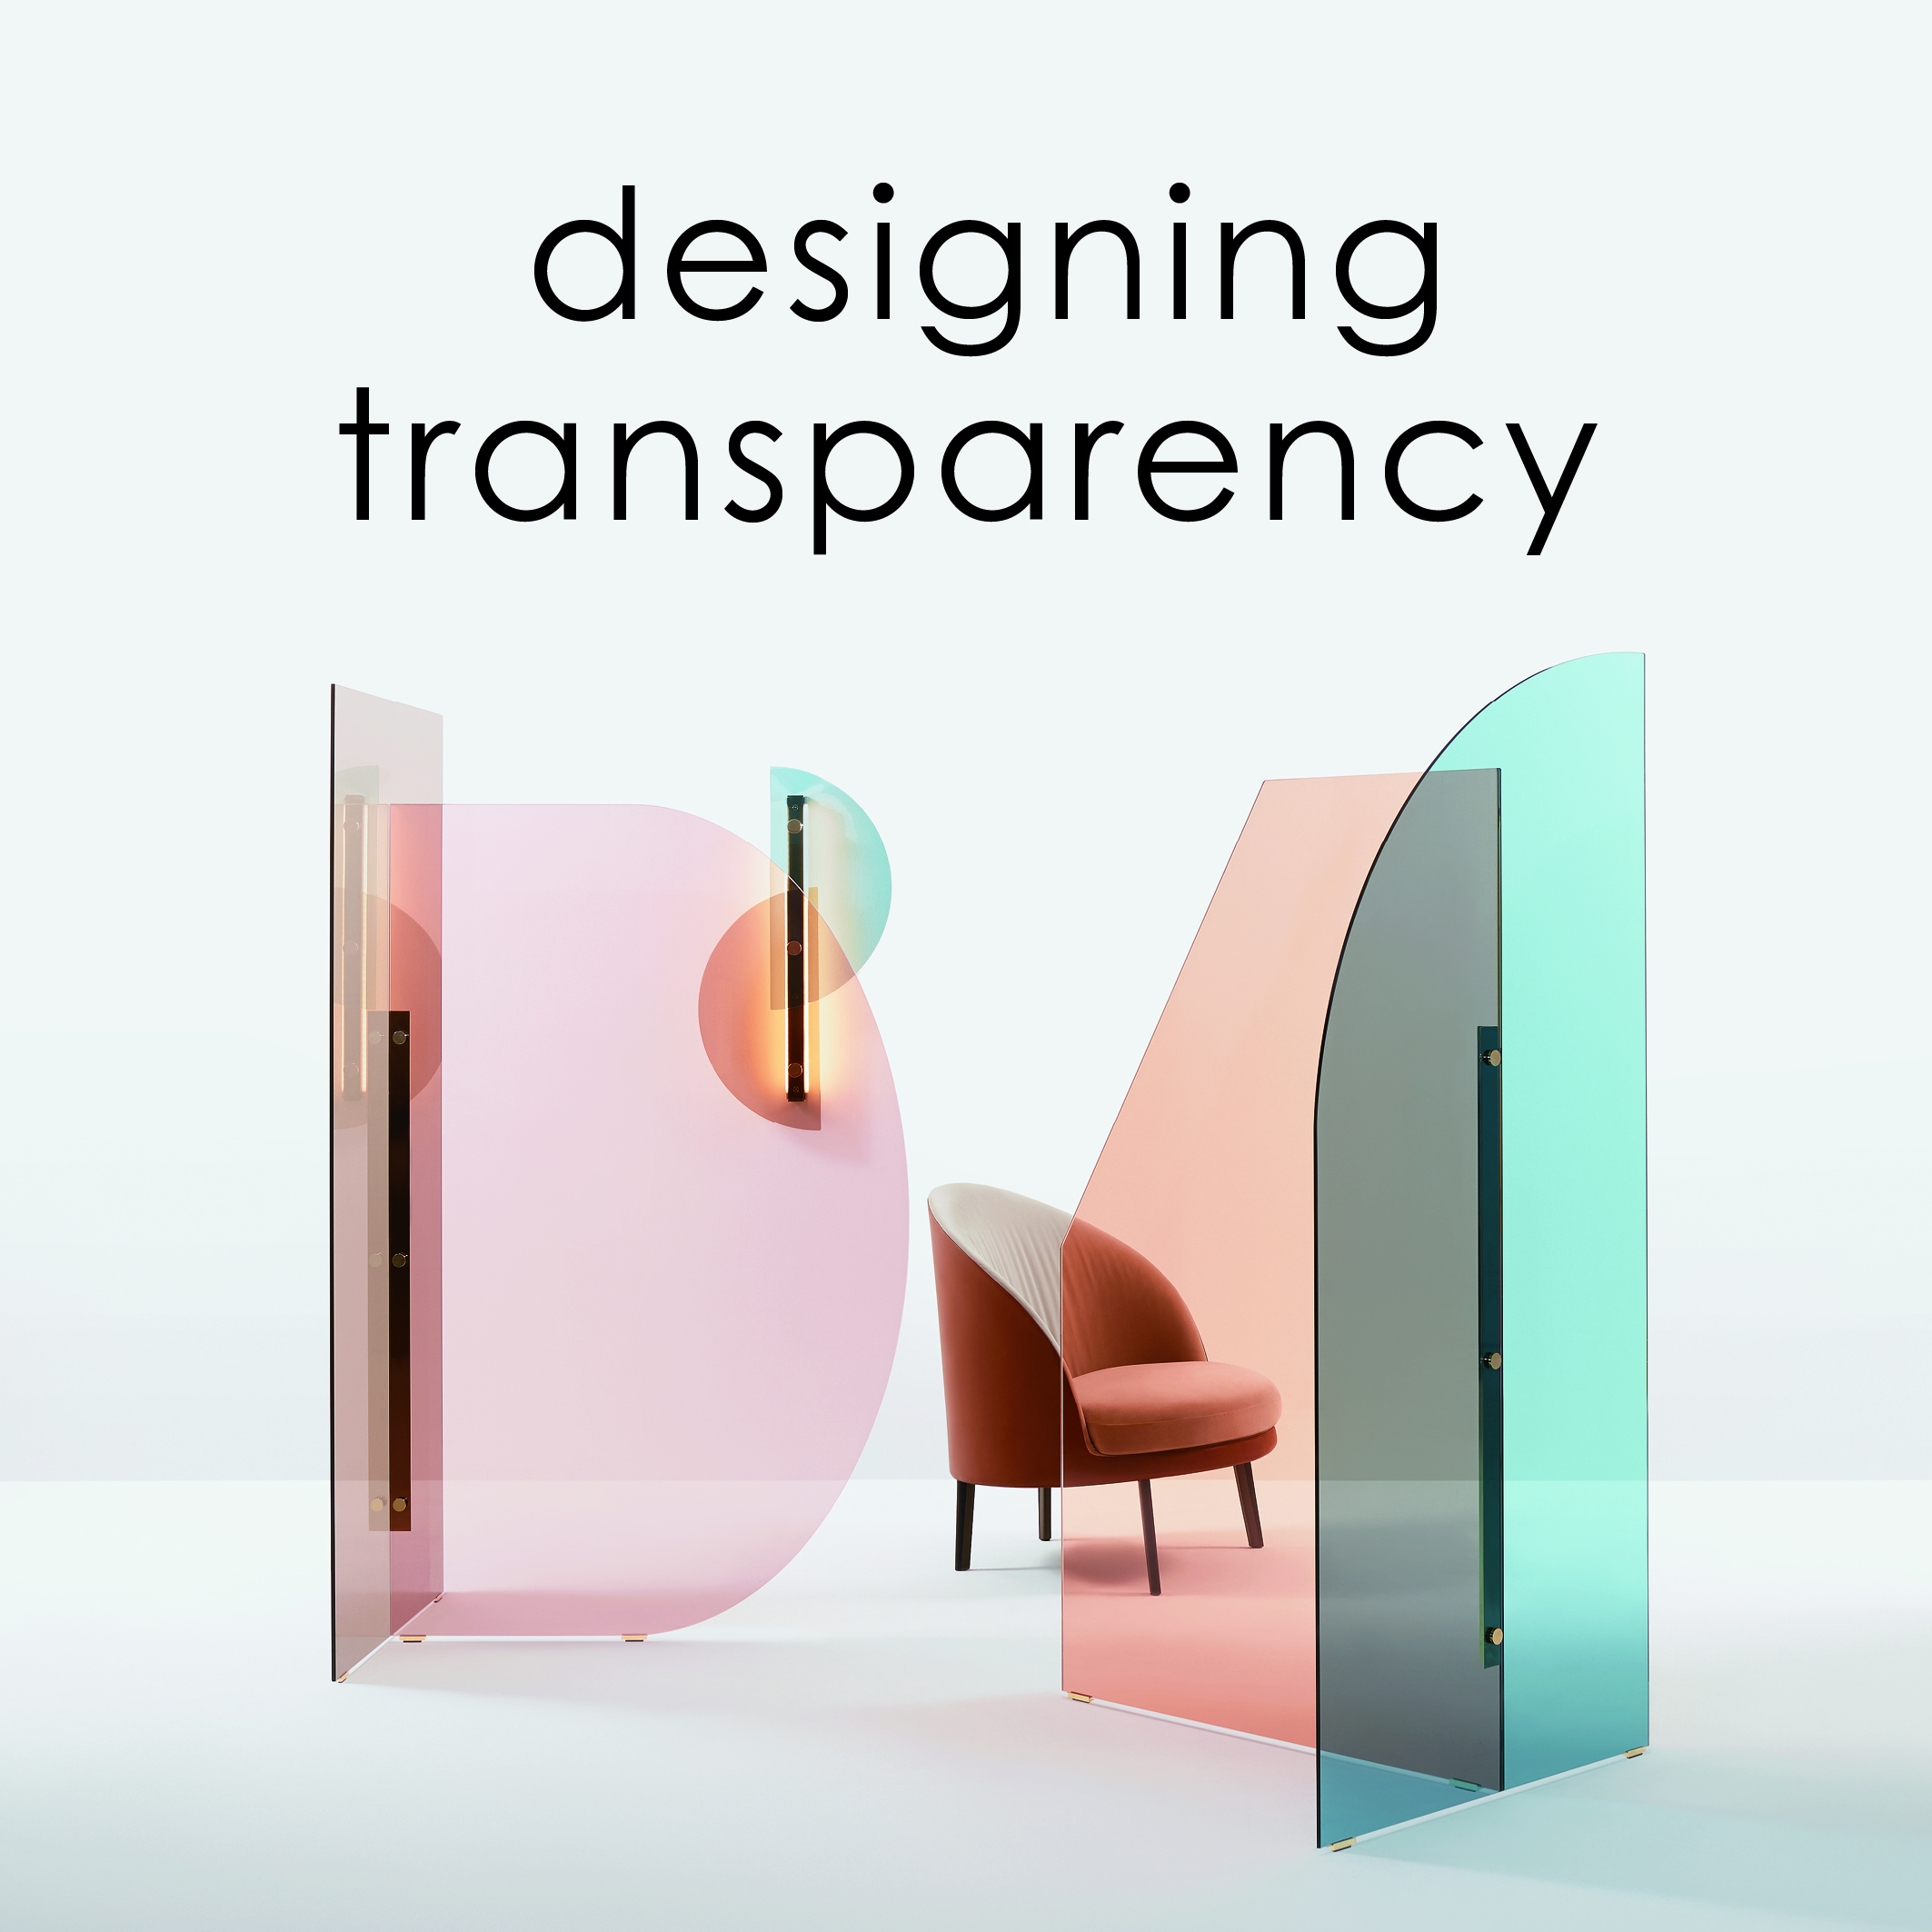 Designing transparency  front cover.jpg